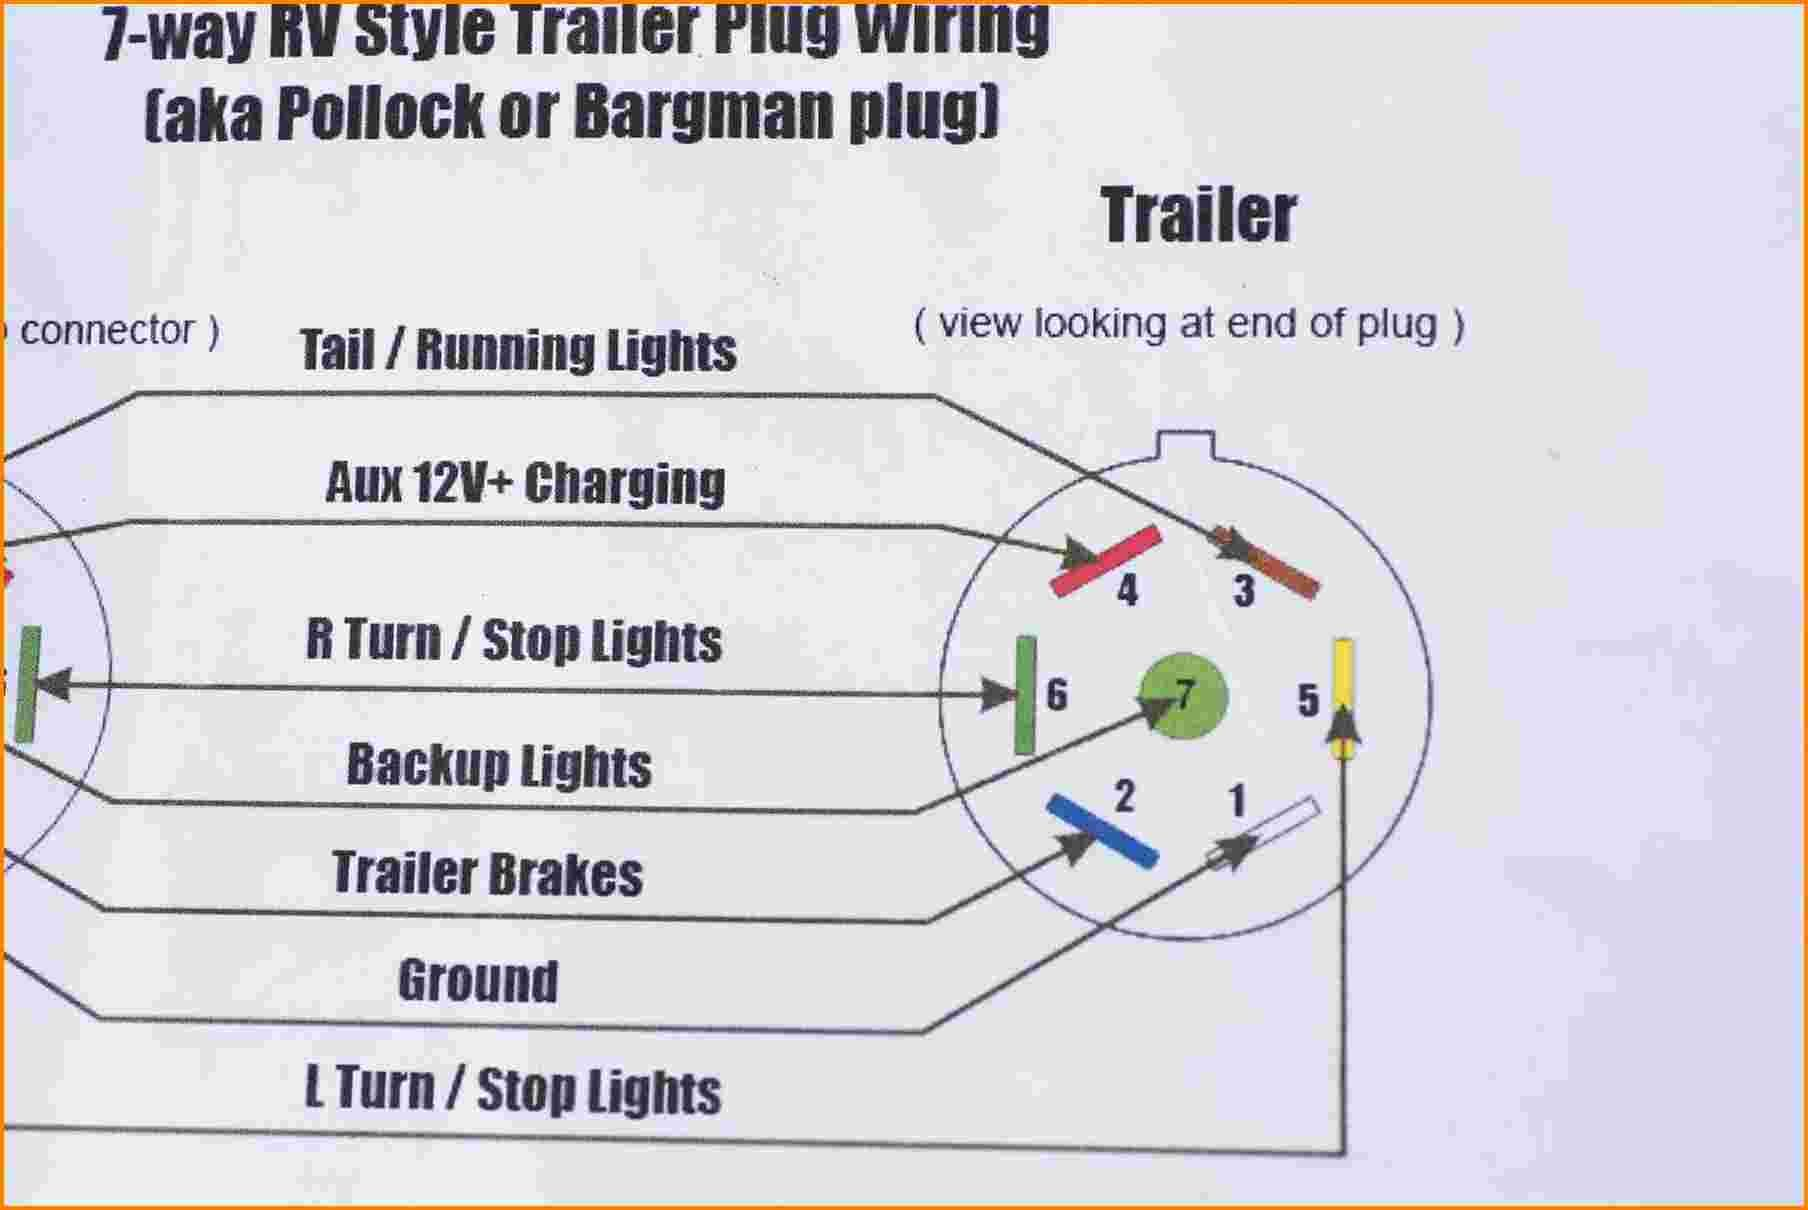 7 wire trailer plug wiring diagram connector